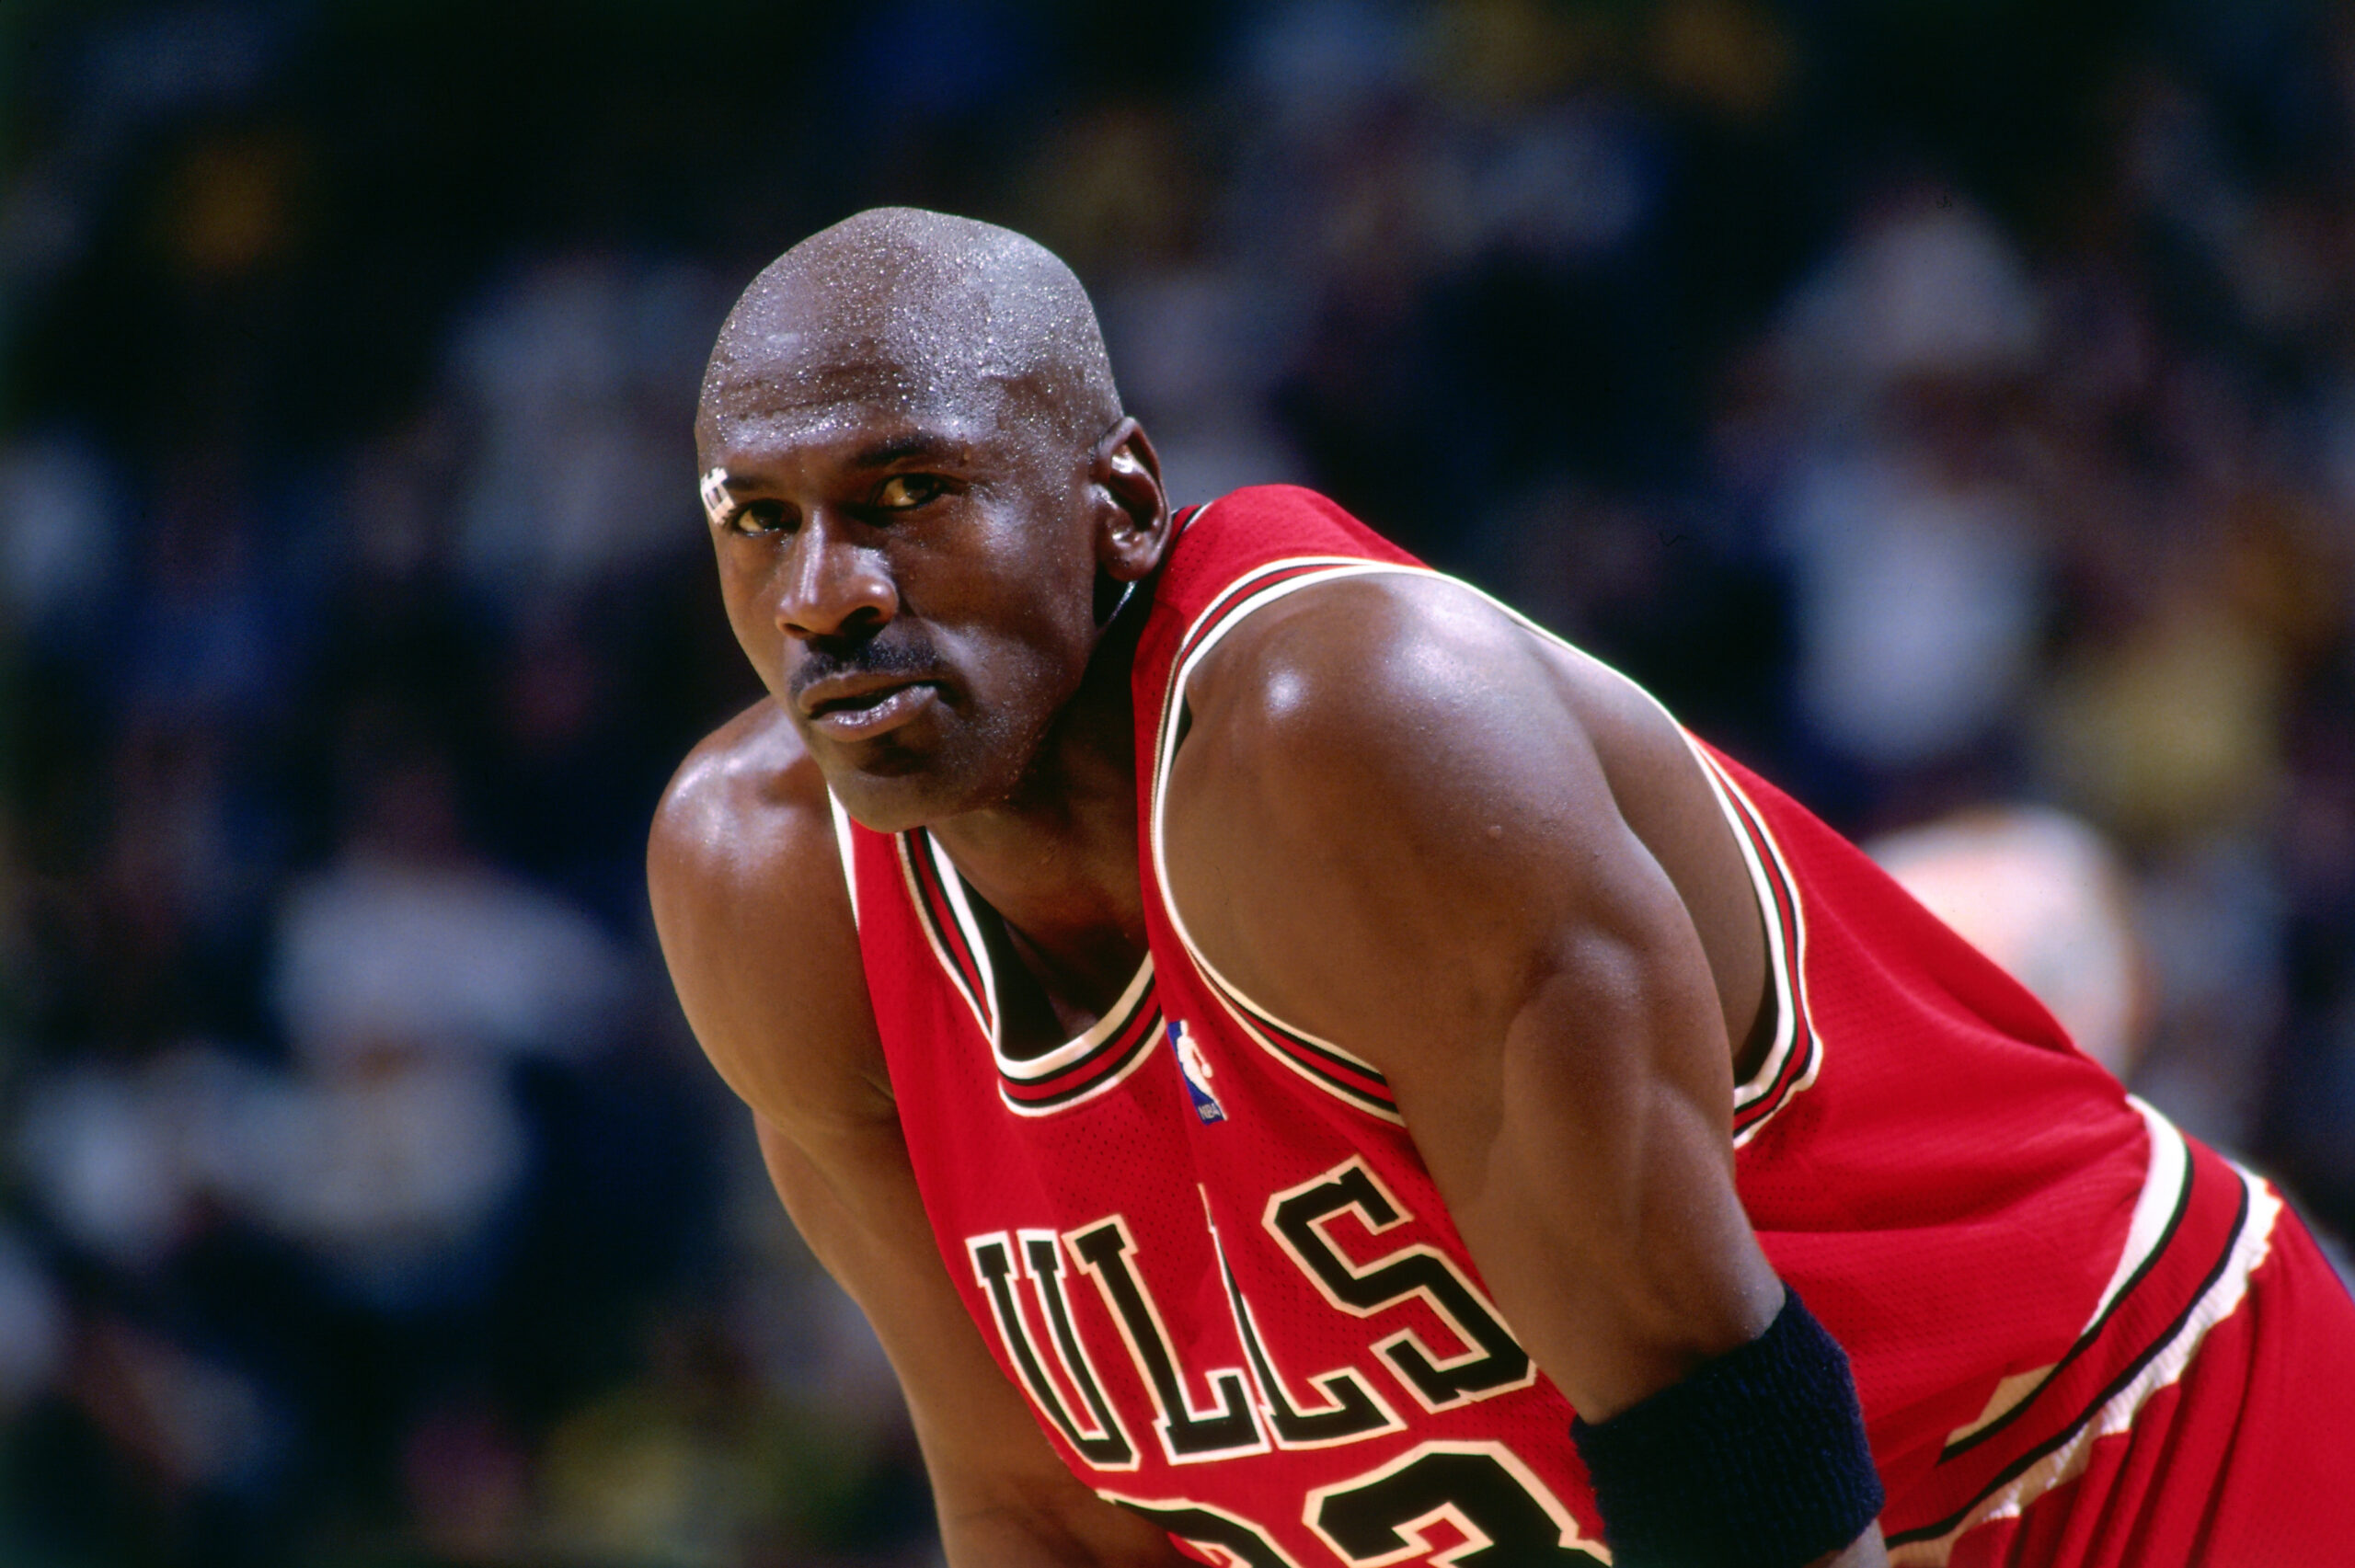 Michael Jordan: Winning 6th title with Bulls was a 'trying year'